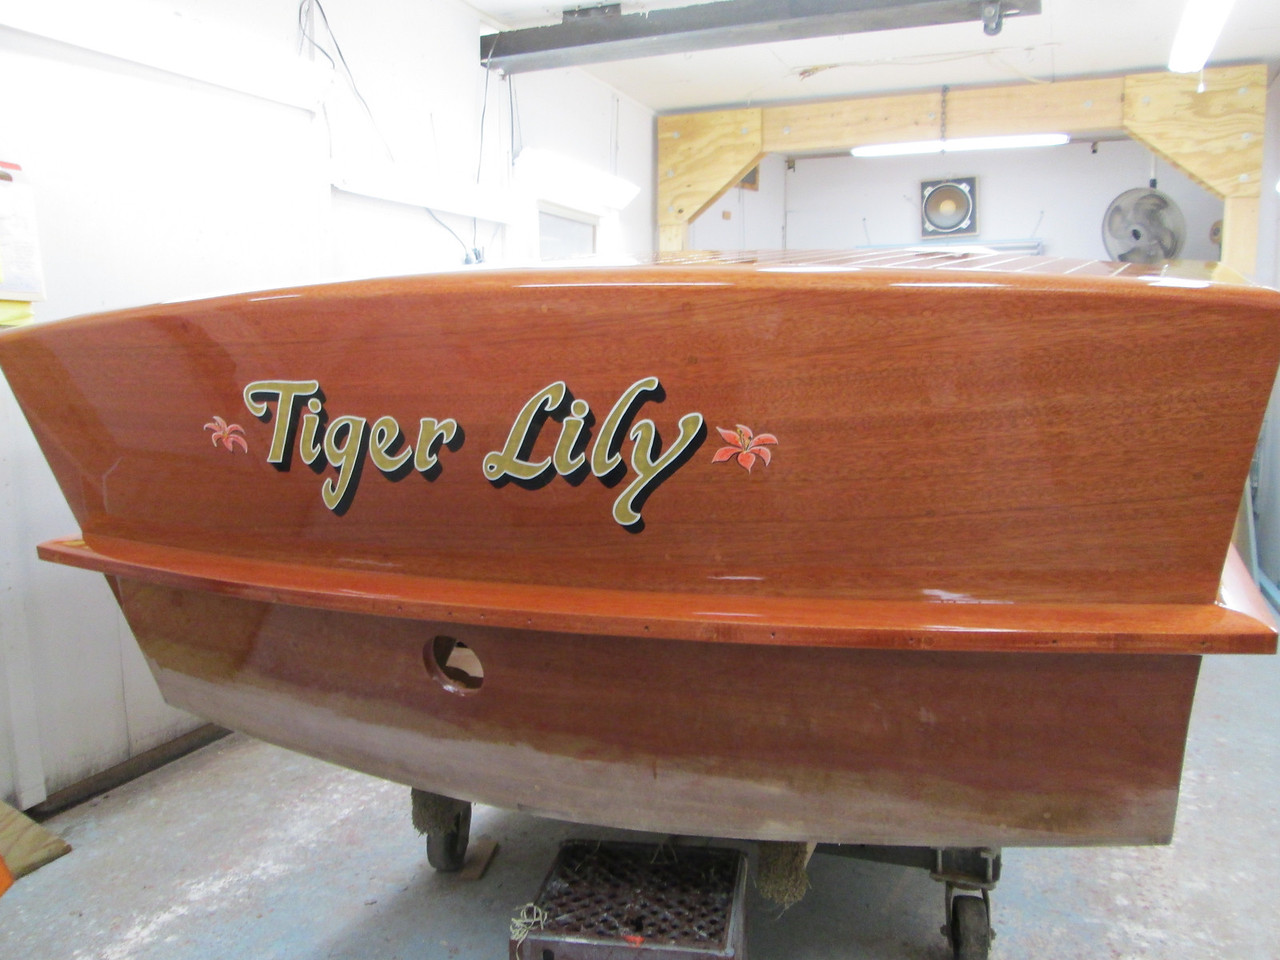 Gold leaf lettering done by Dan Davidson with one coat of varnish applied over the lettering.